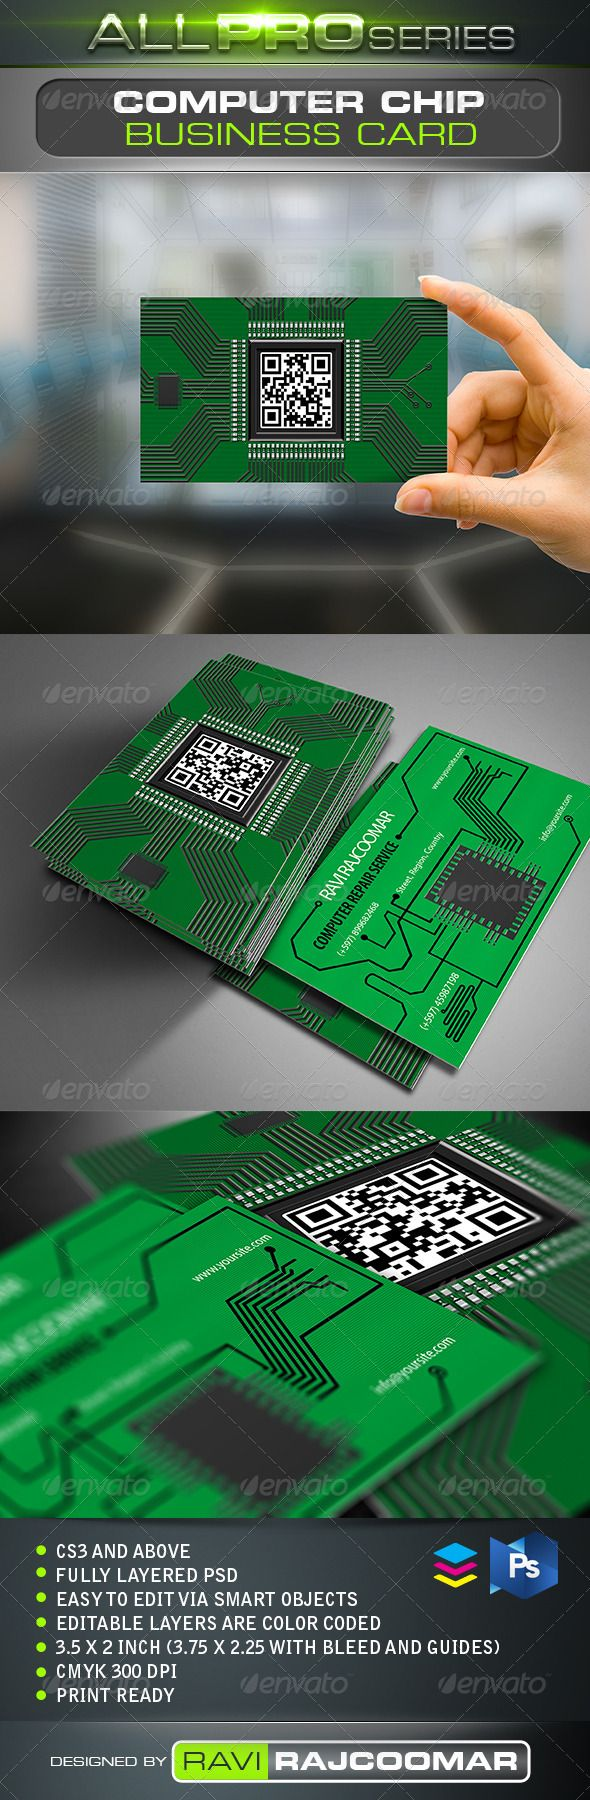 Circuit Board Business Card | Business cards, Business and Fonts